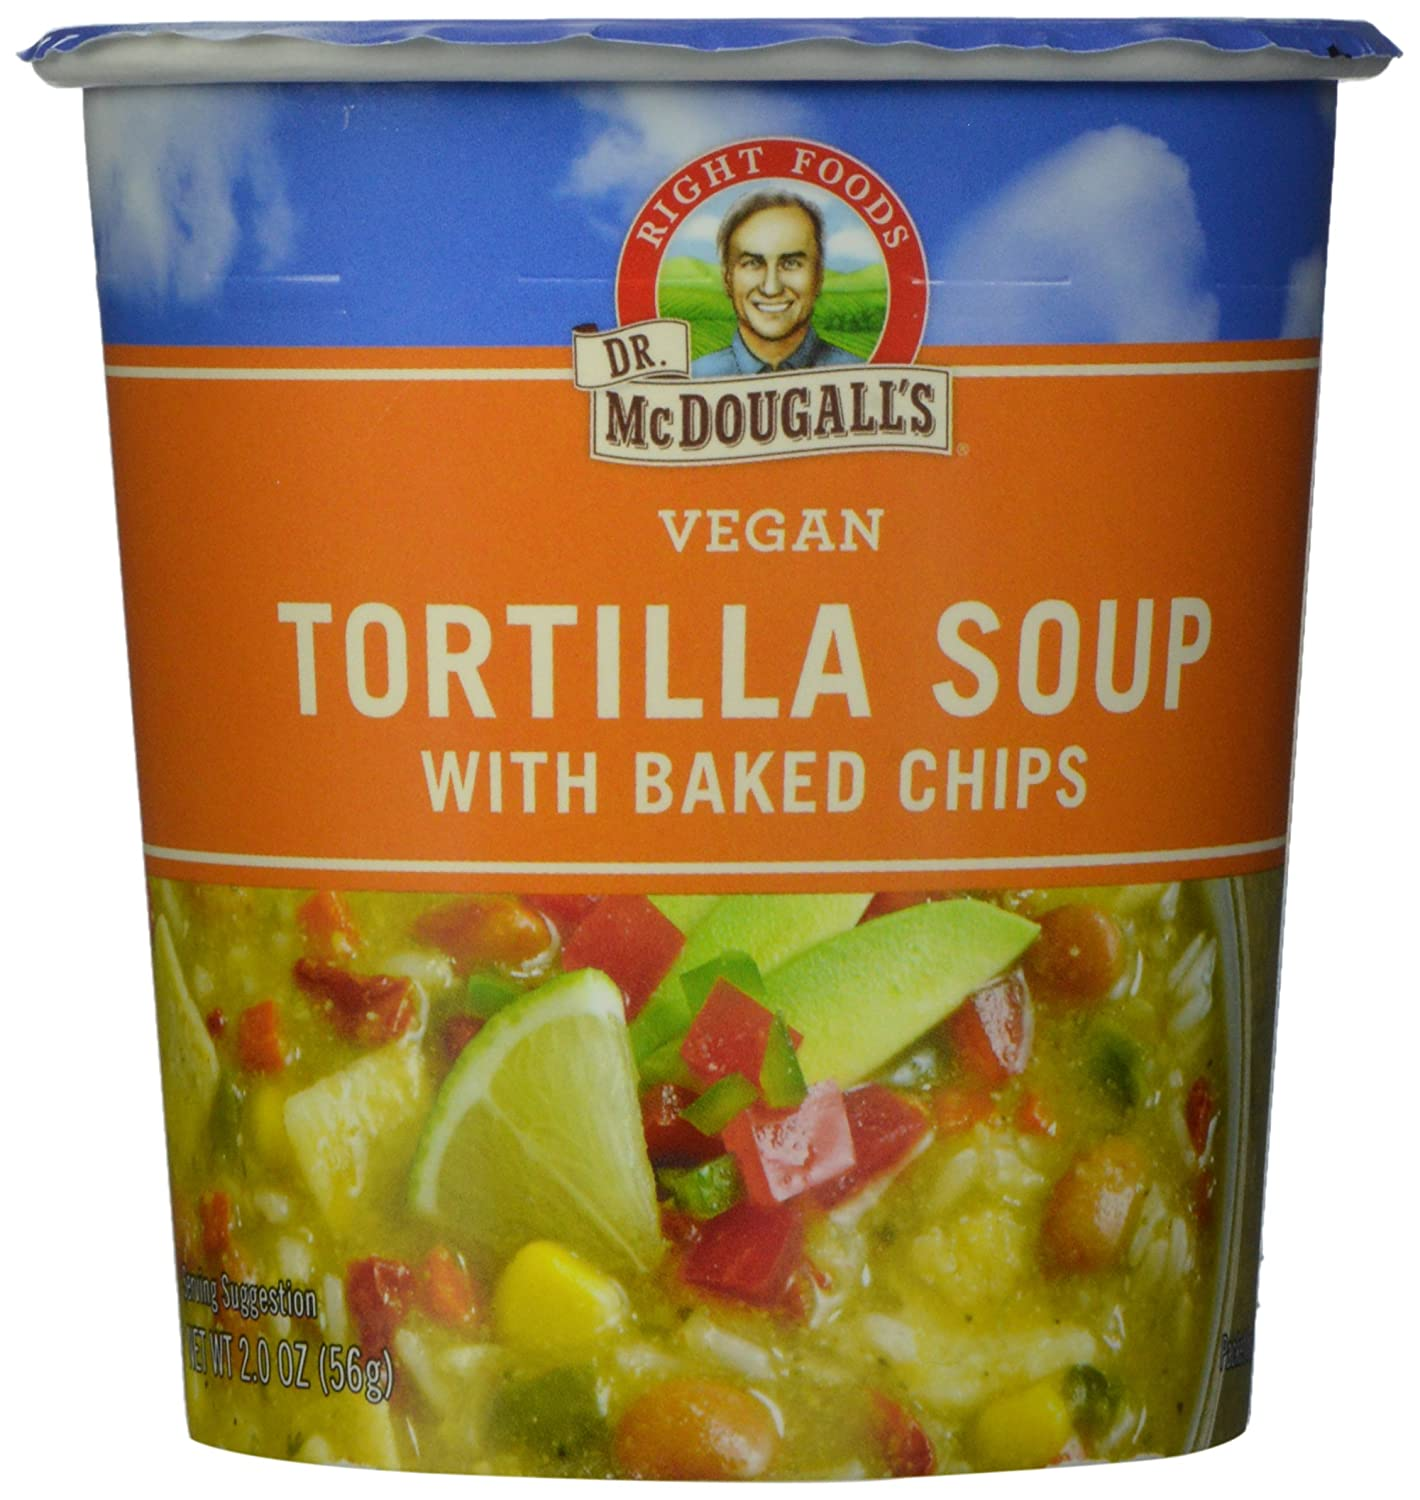 Attractive Amazon.com : Dr. McDougall's Right Foods Vegan Tortilla Soup with  PX43